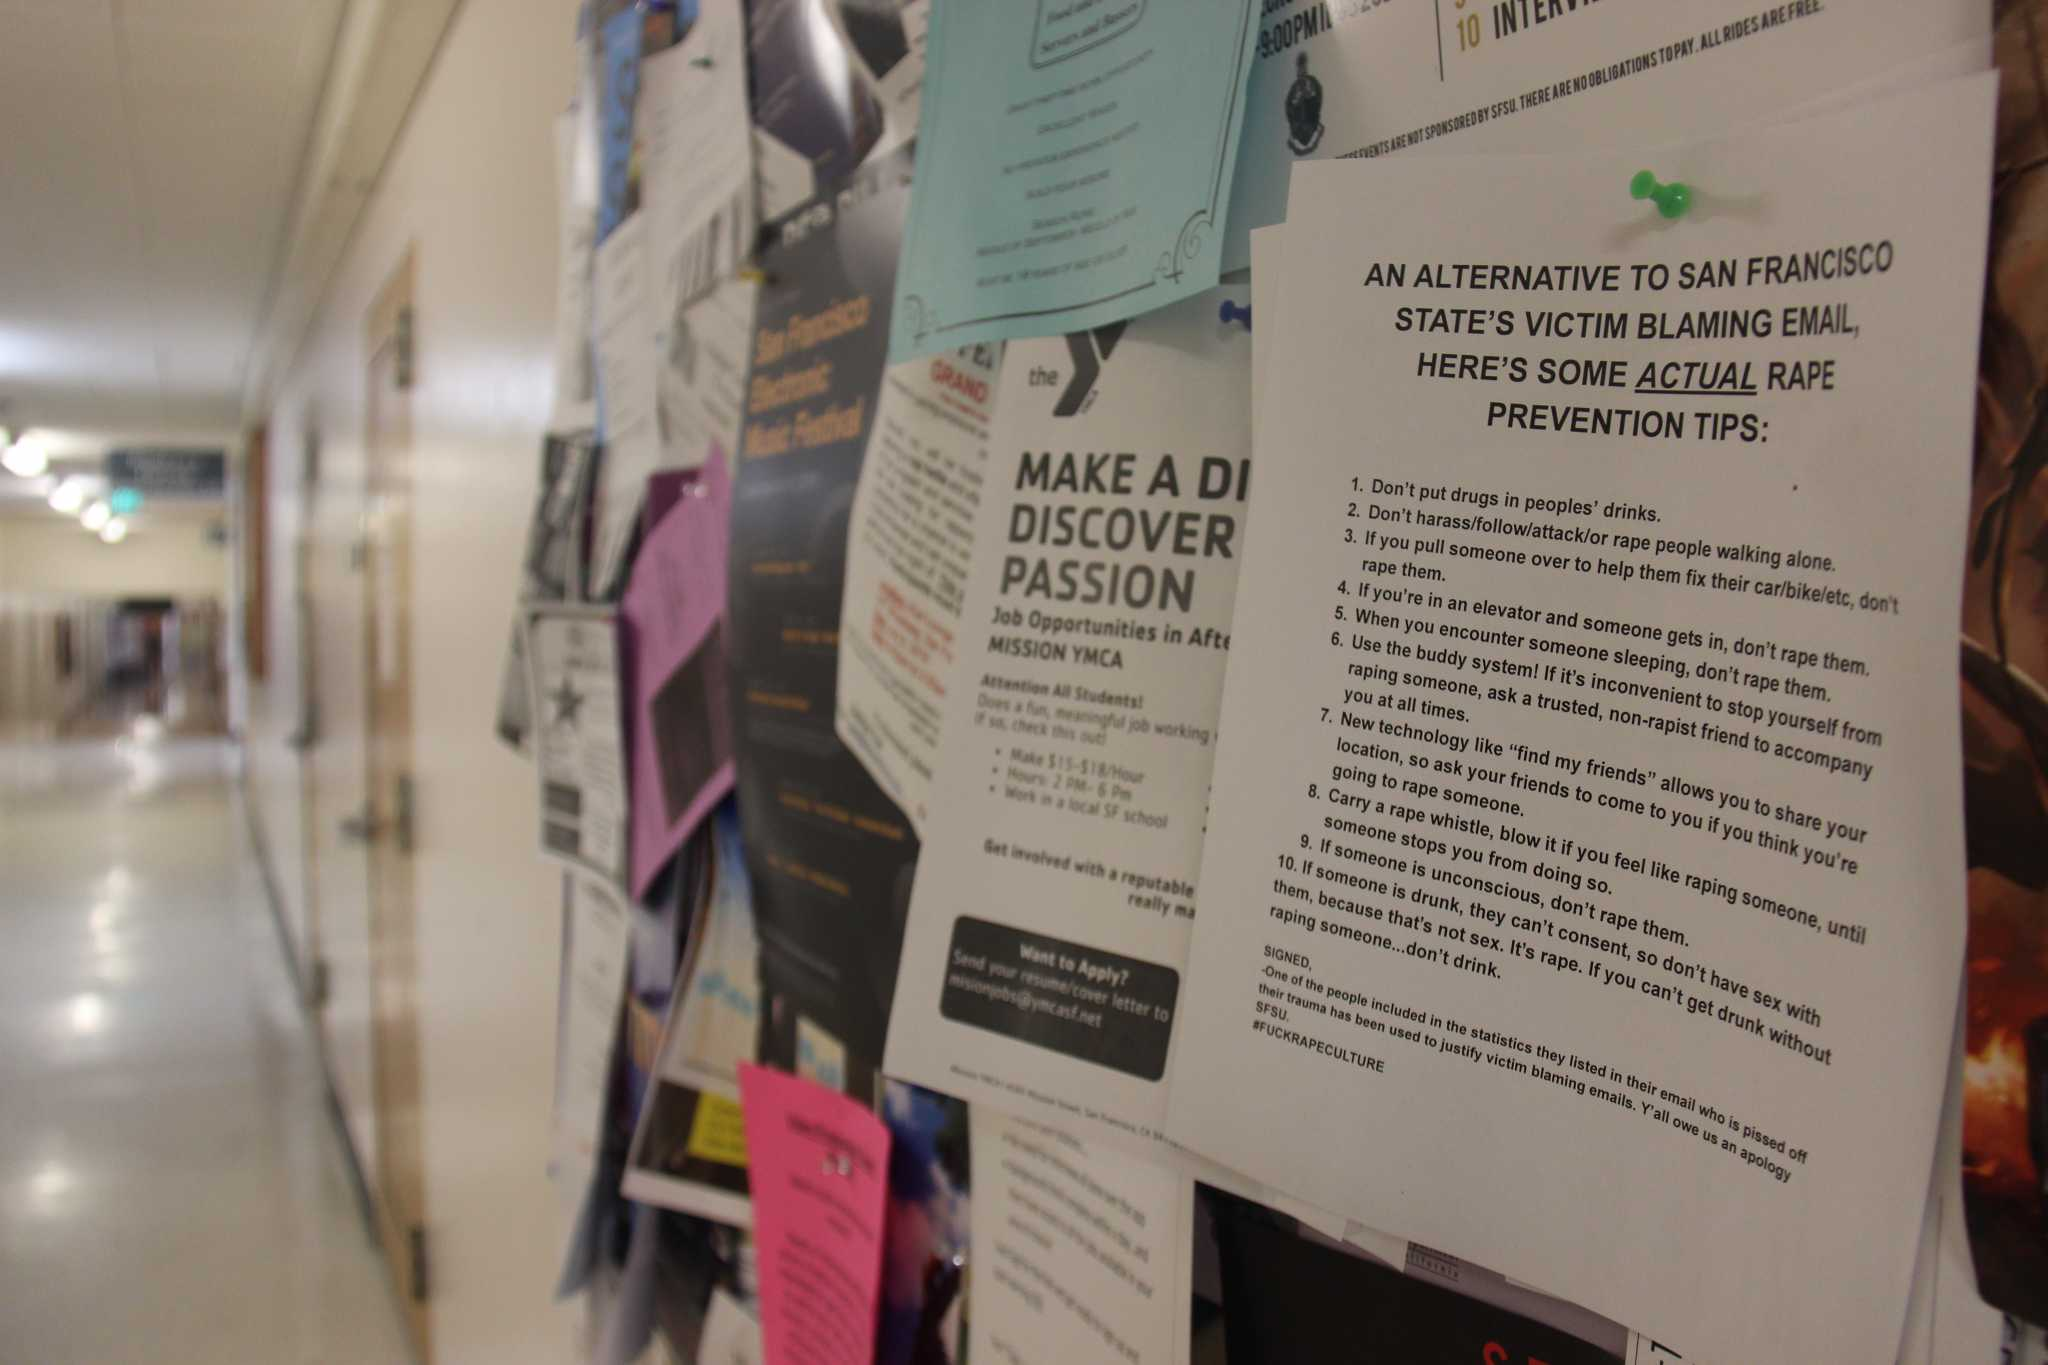 Copies of an anonymous letter accusing SF State of victim blaming were found posted around the Health & Social Sciences Building and in the Creative Arts Building on Saturday, Sept. 10, 2016.